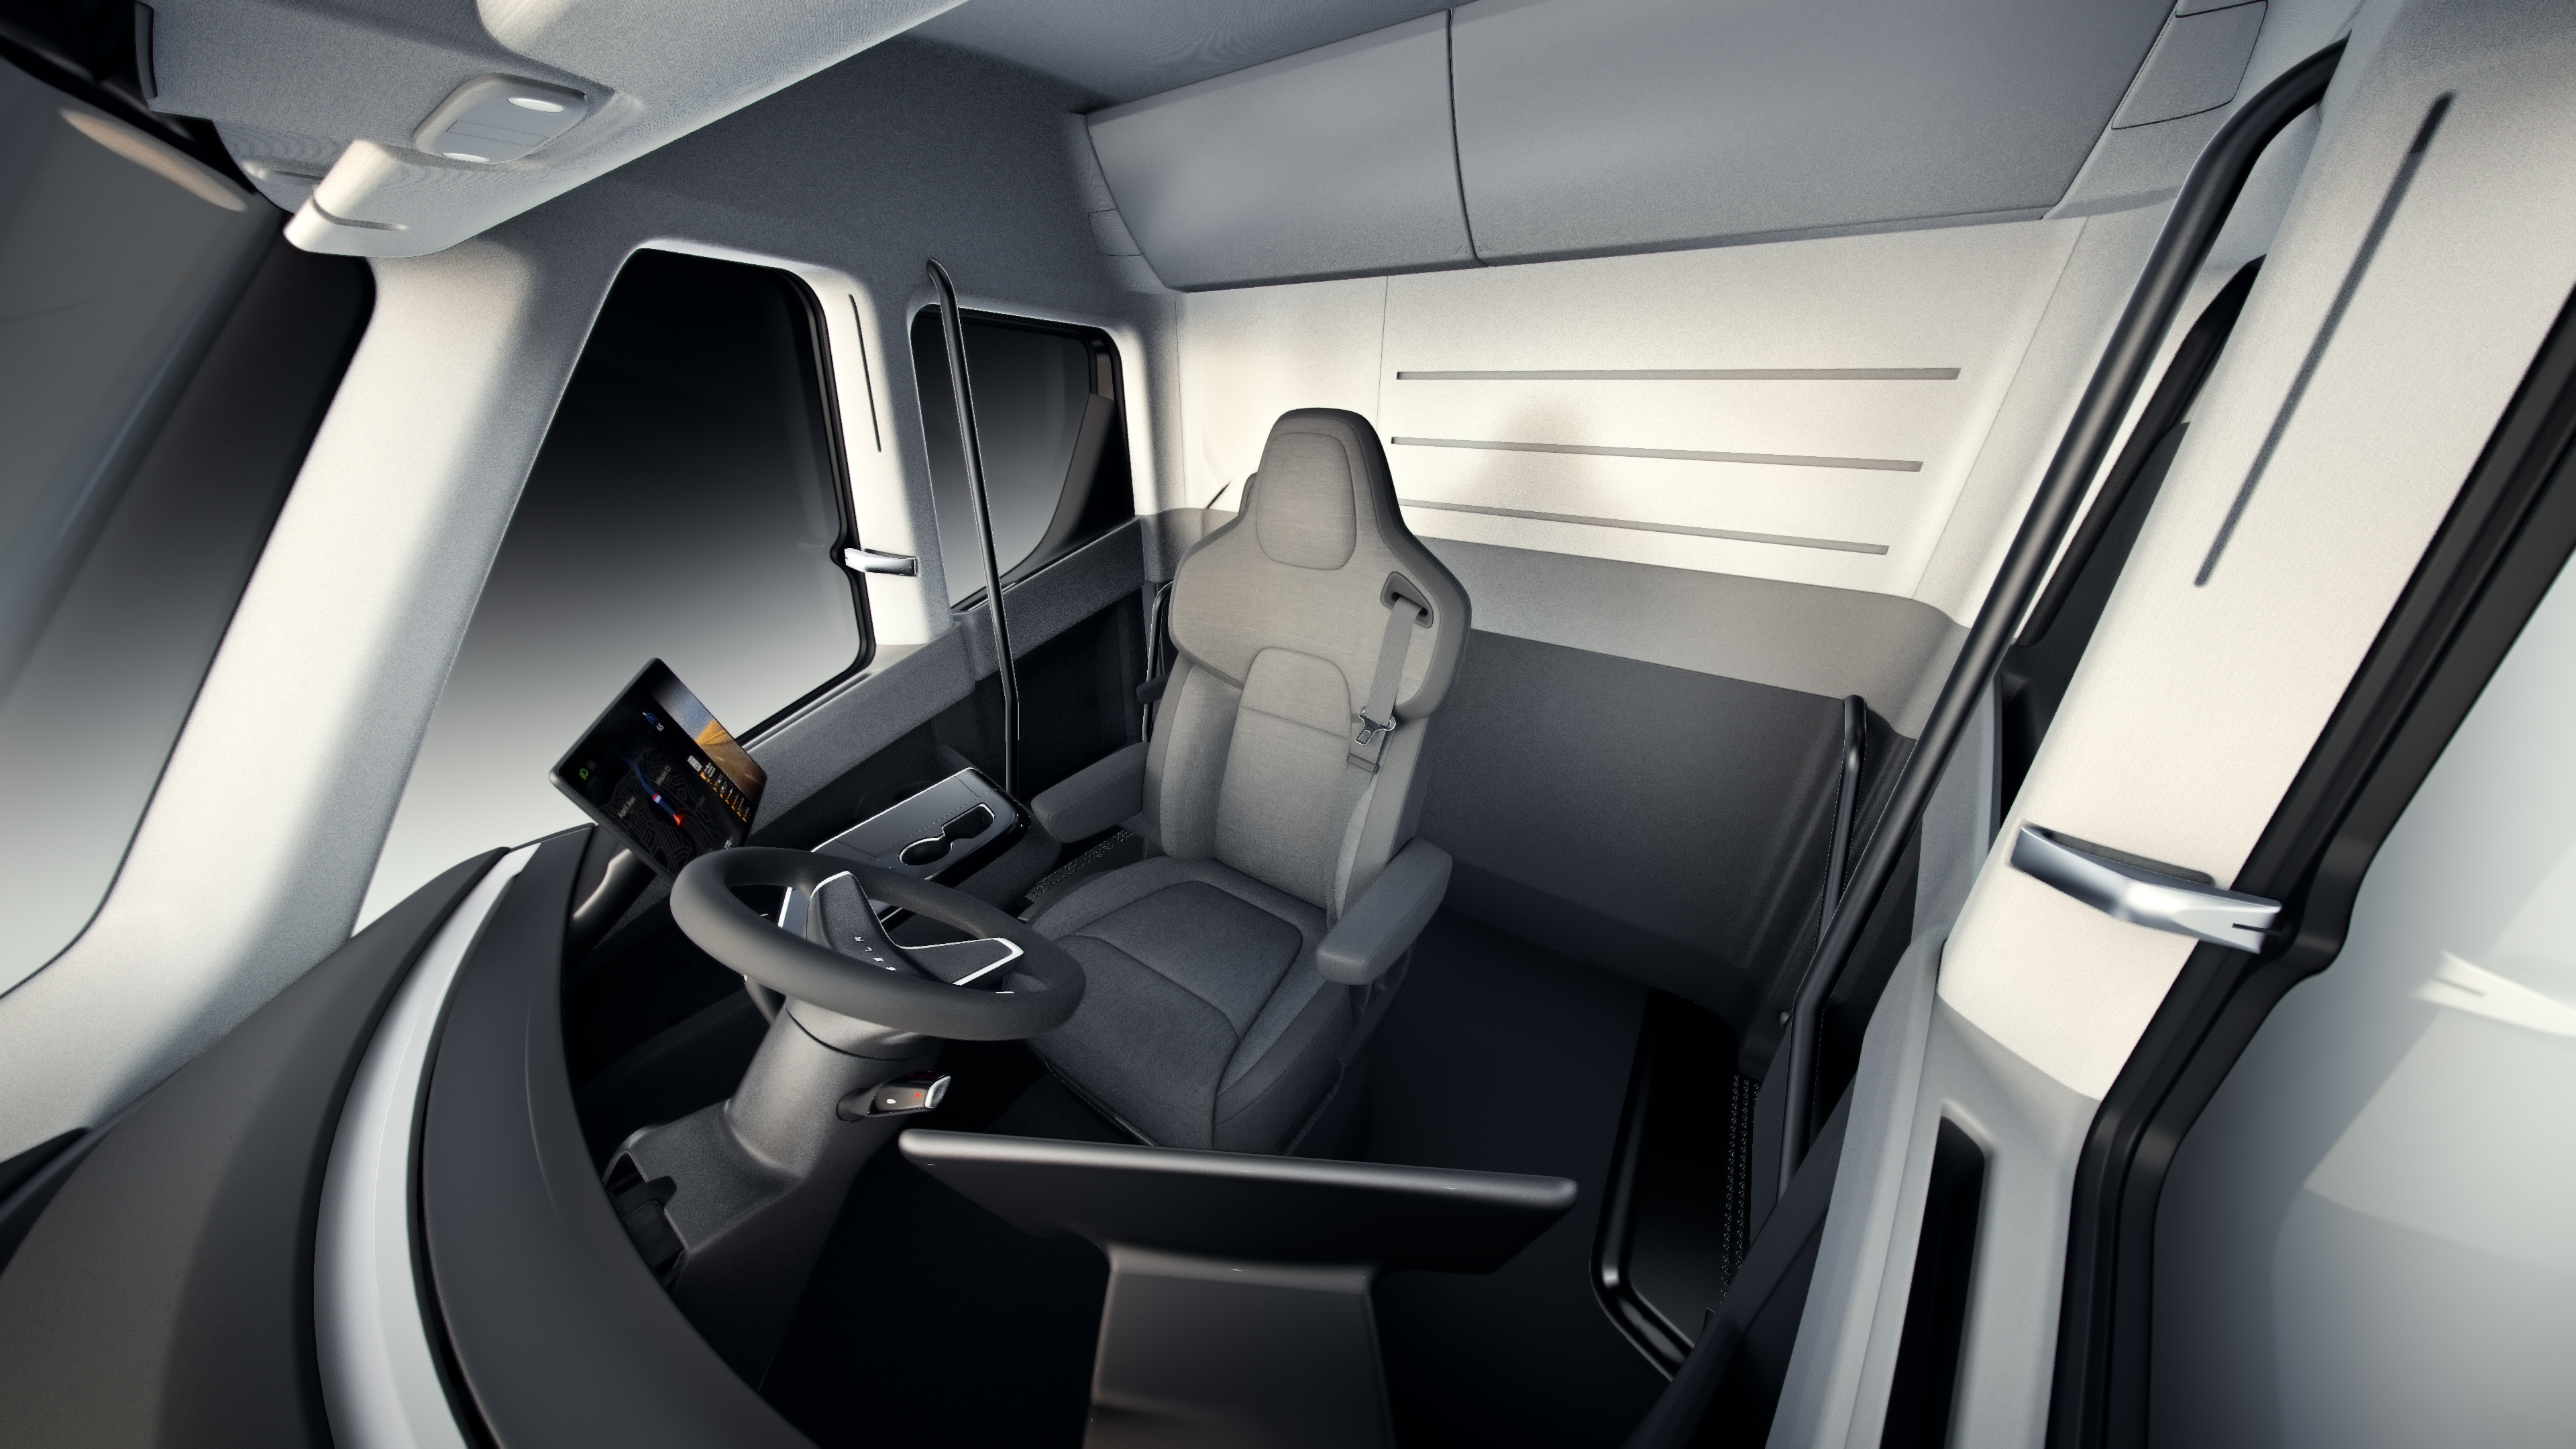 Tesla Truck: An Look Inside The New Electric Semi | Fortune